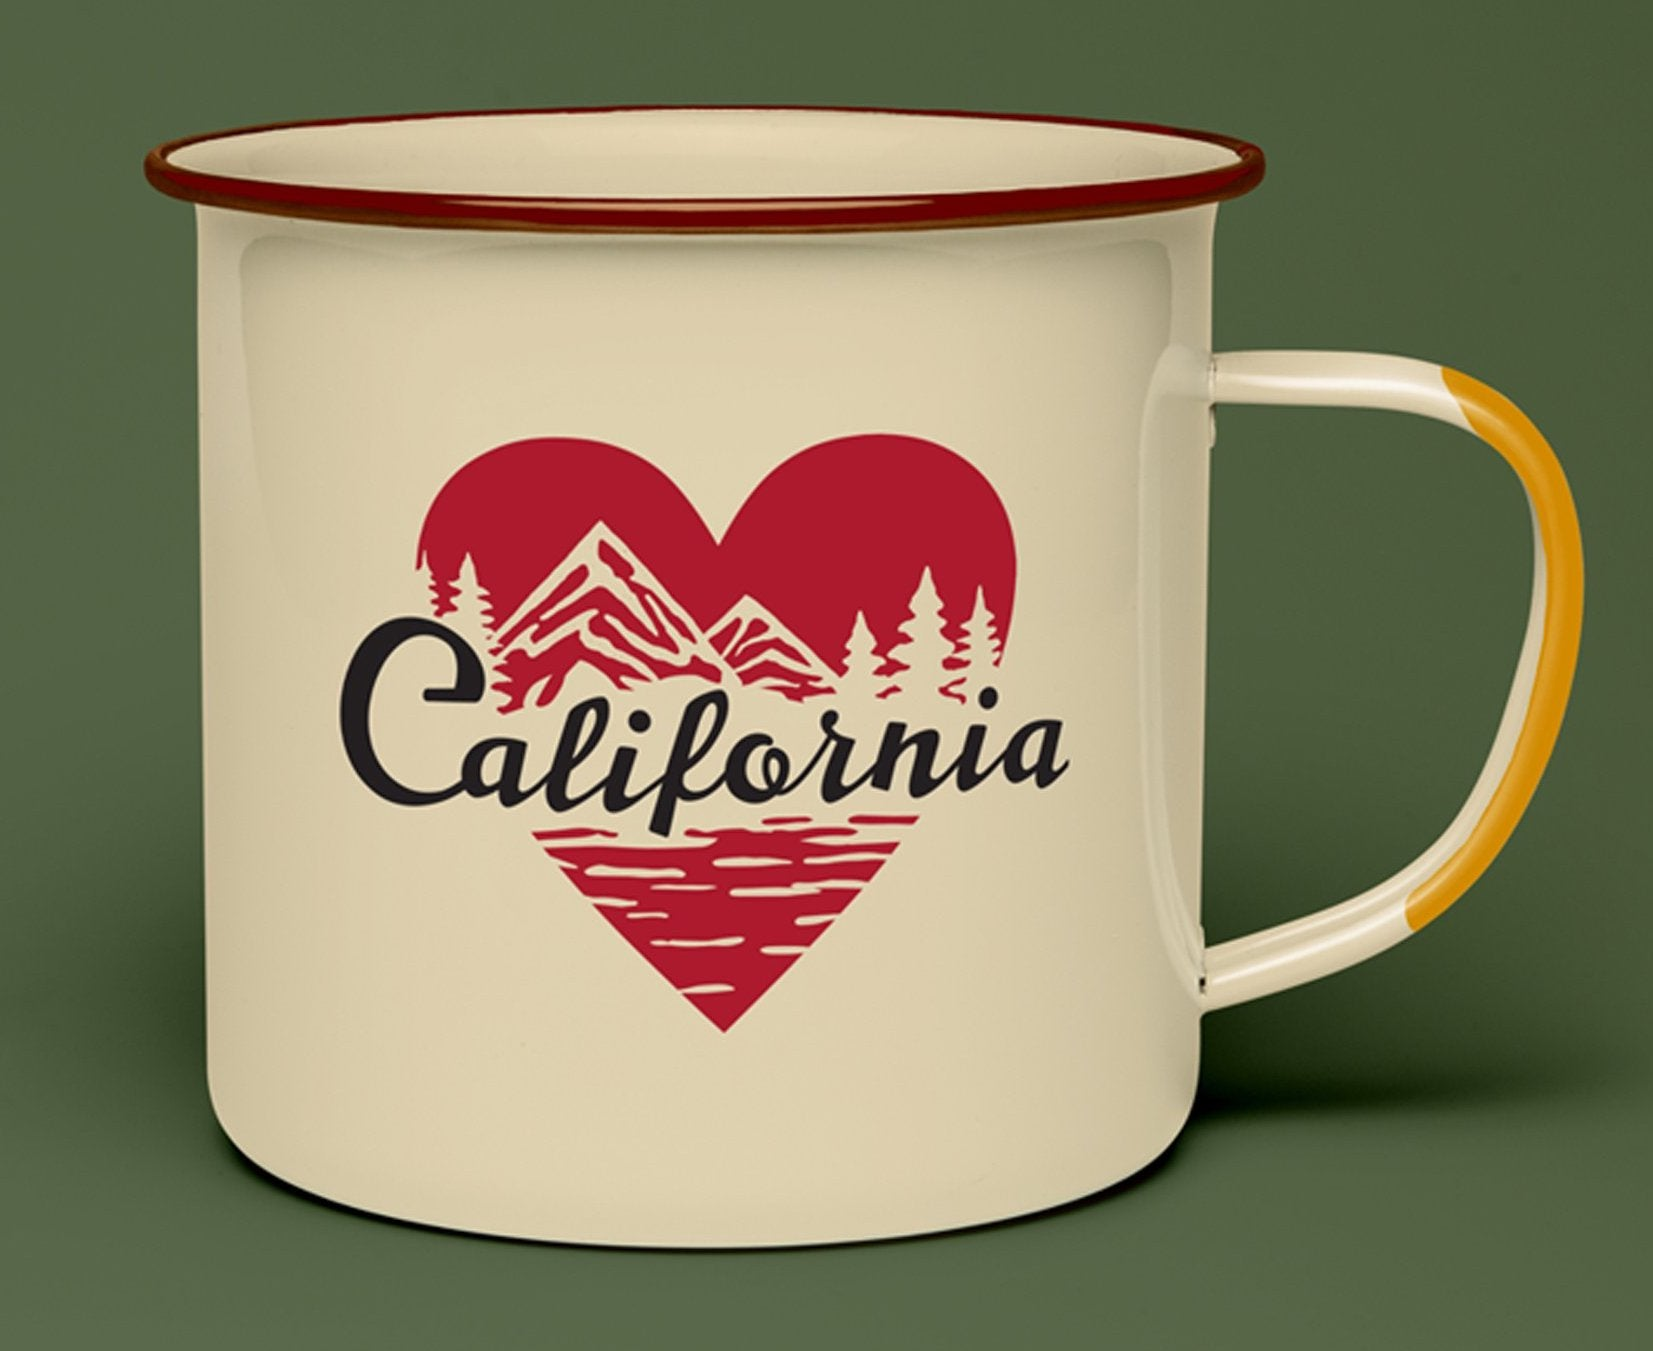 United by Blue's California mug is a tan, steel mug with red heart